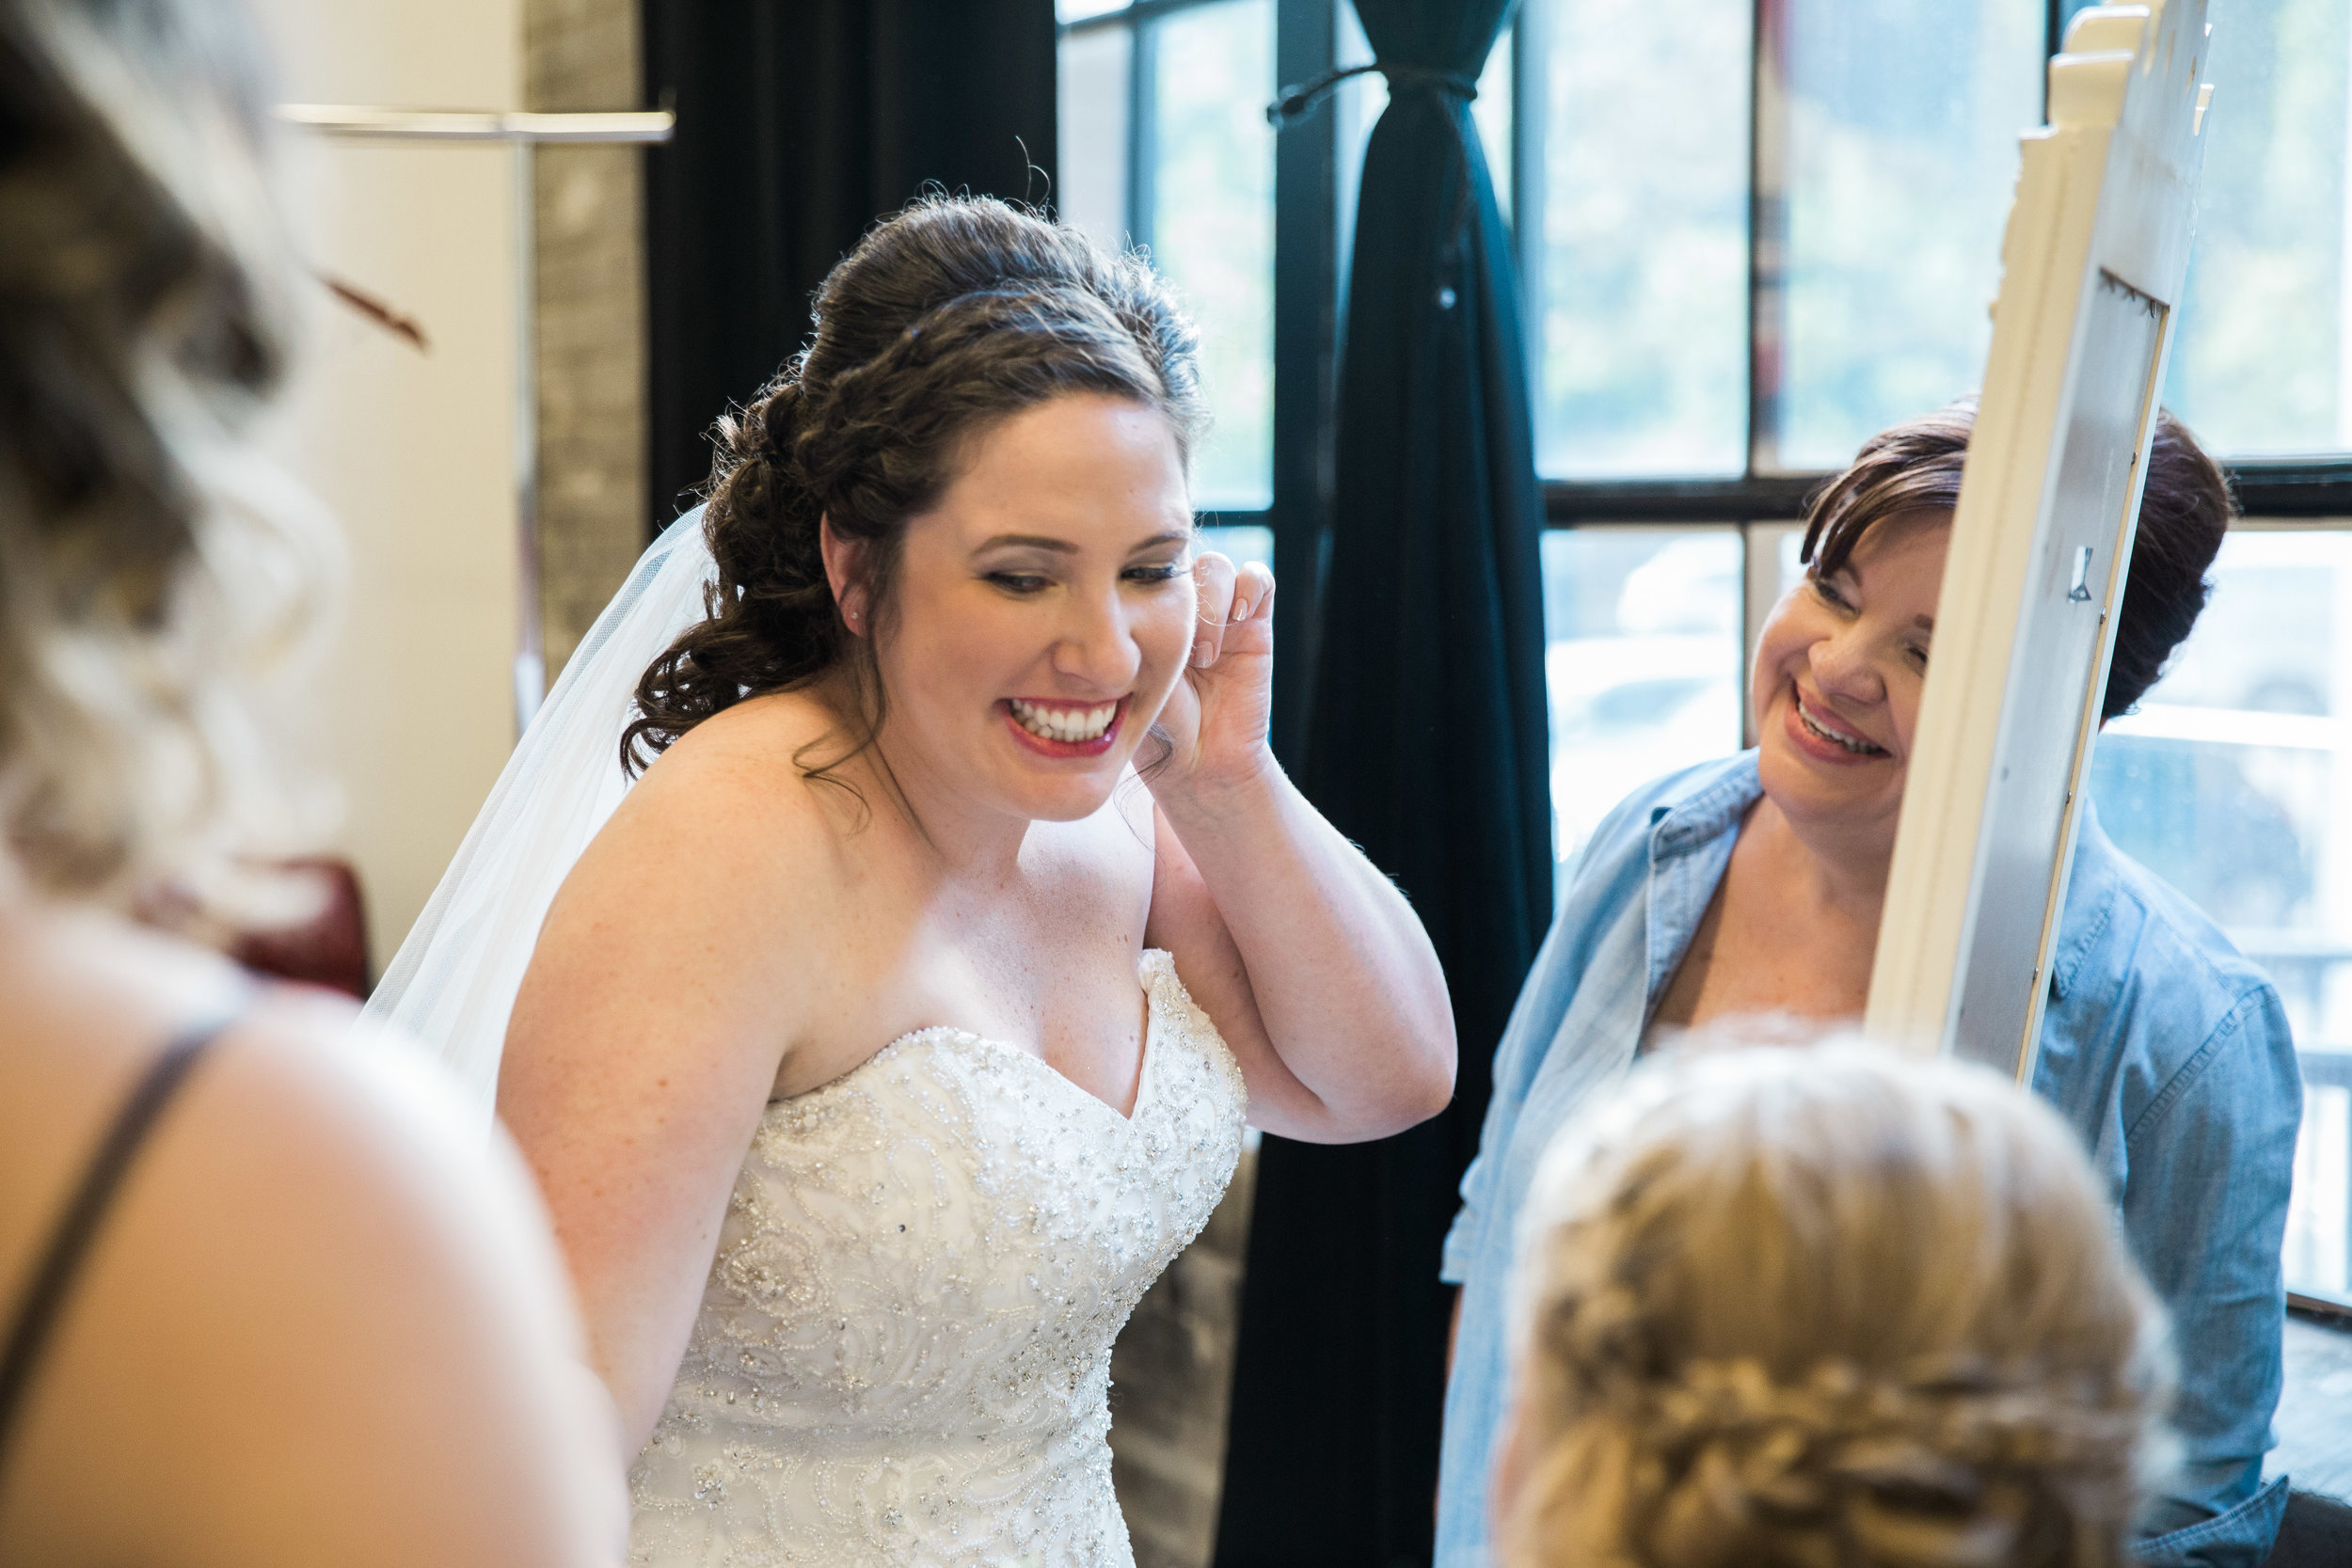 Smiling Bride Getting Ready_Tania Howard Photography.jpg